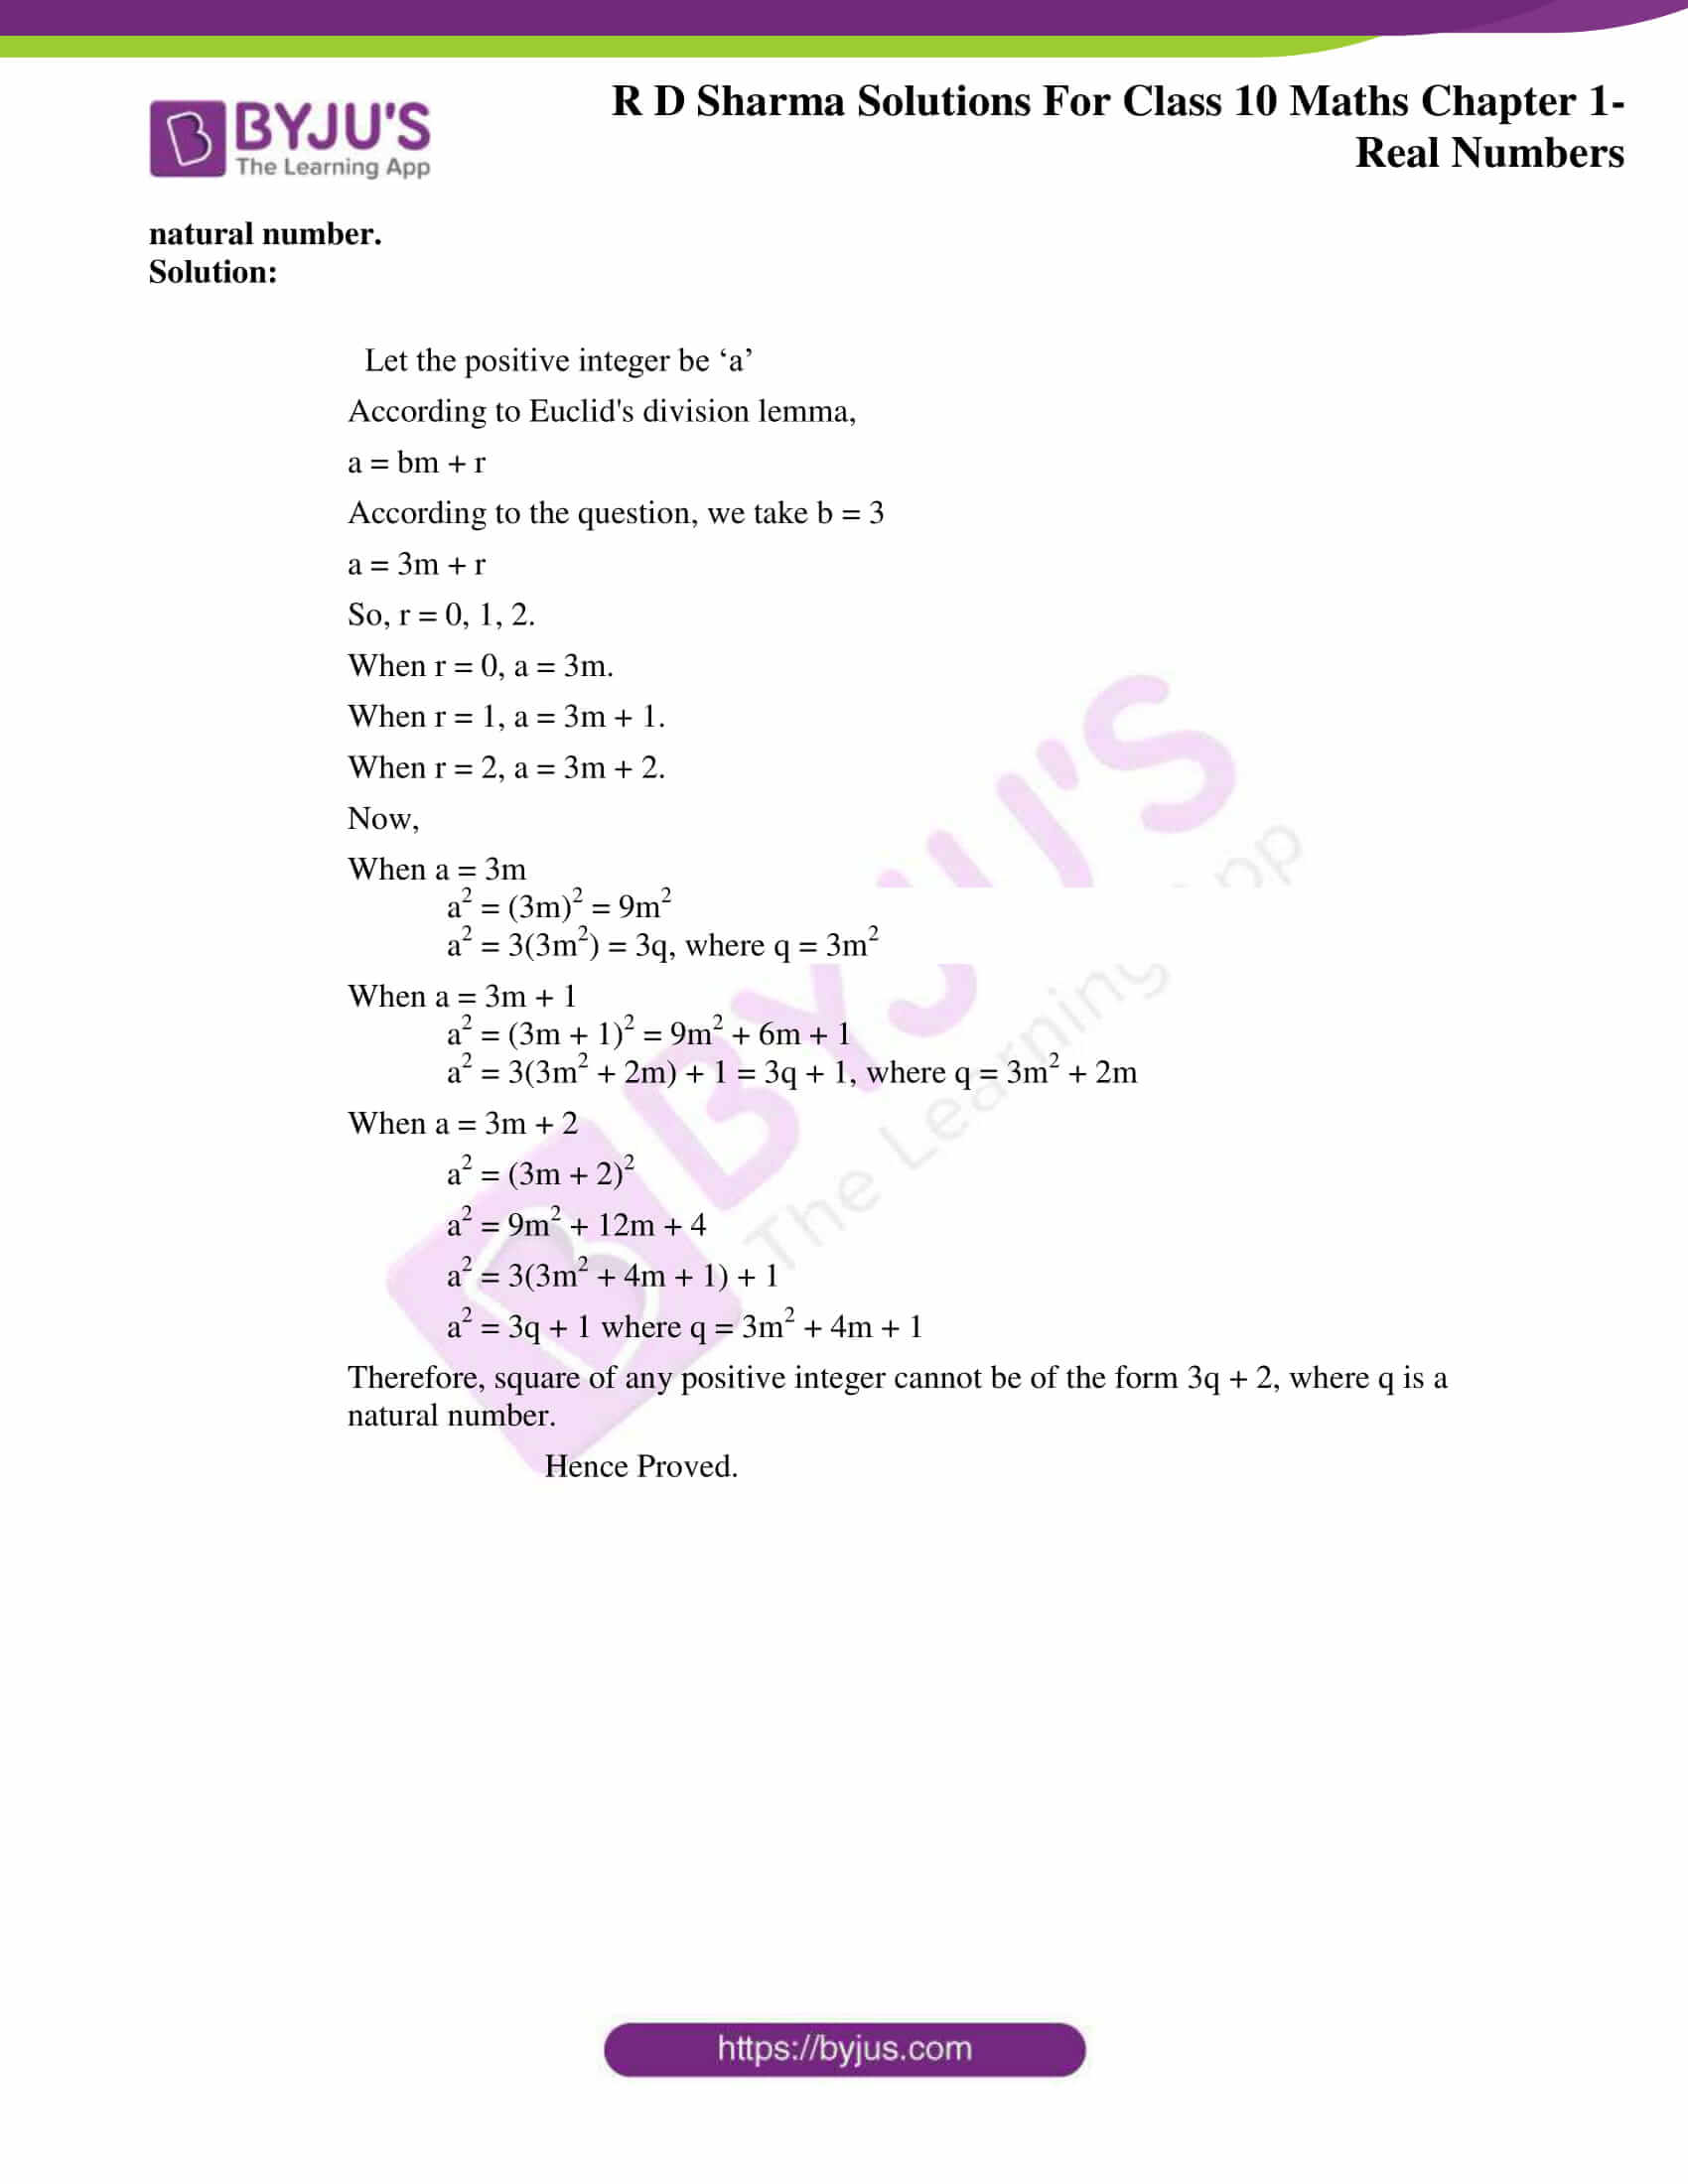 rd sharma class 10 chapter 1 real numbers solutions exercise 1 12